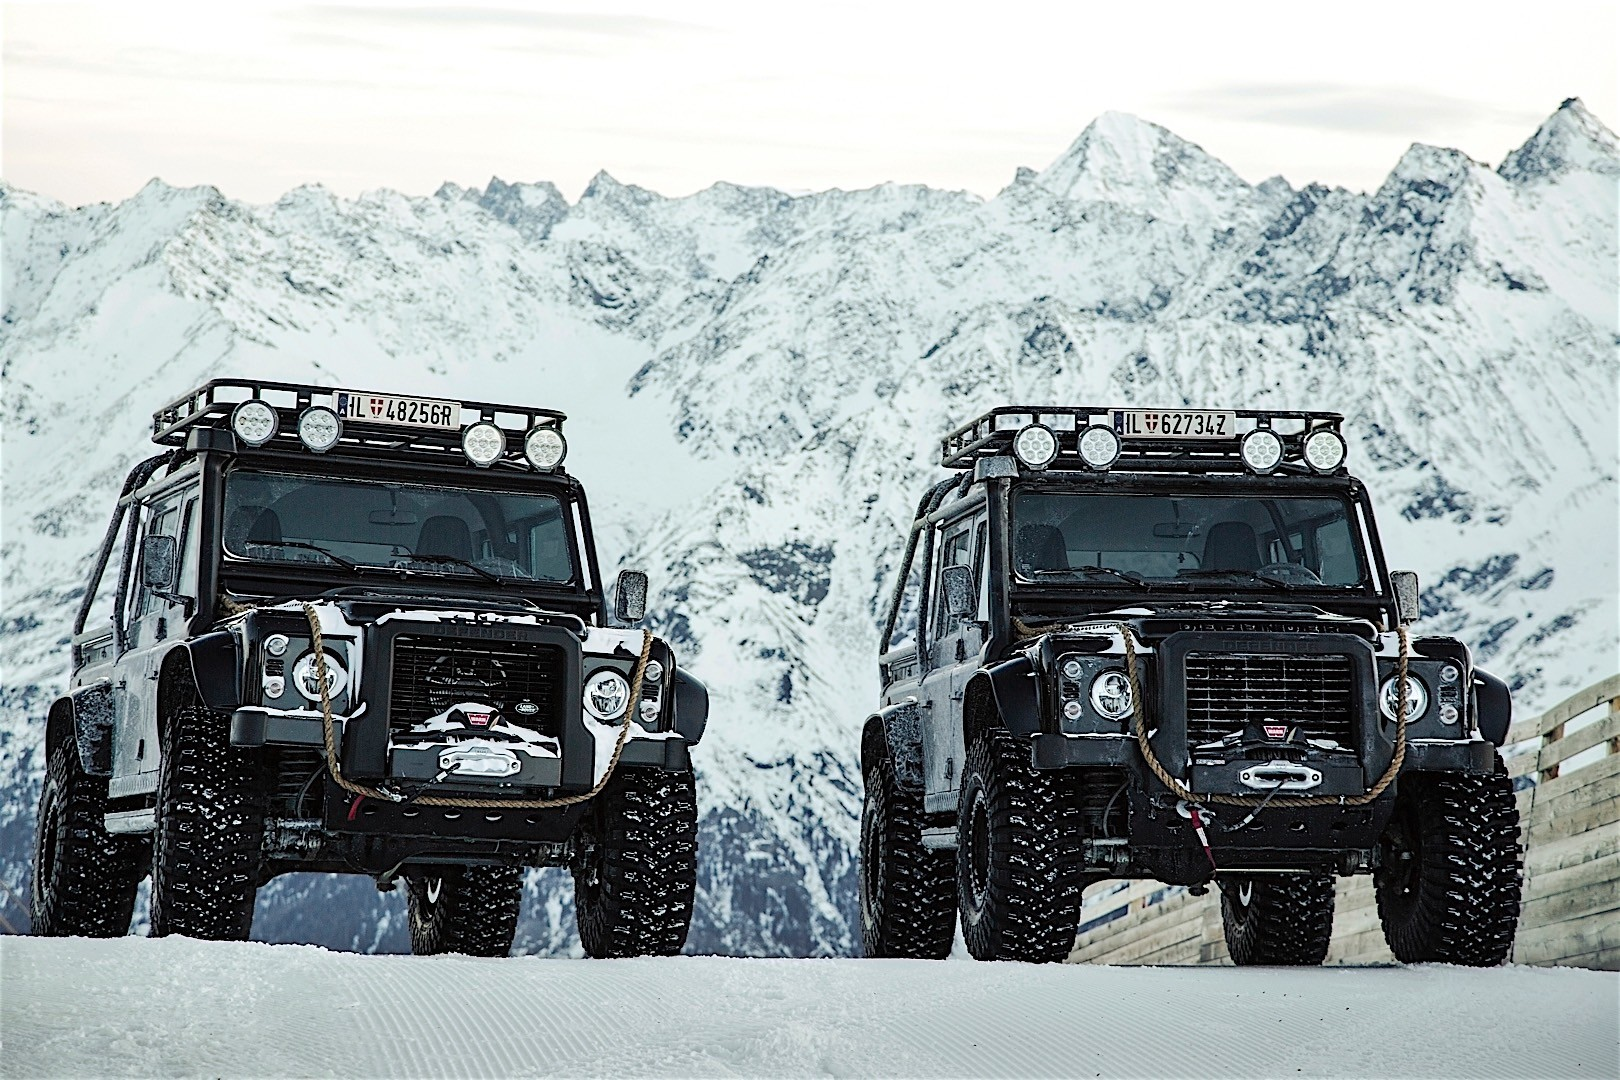 110 Wallpapers 2: LAND ROVER Defender 110 Specs & Photos